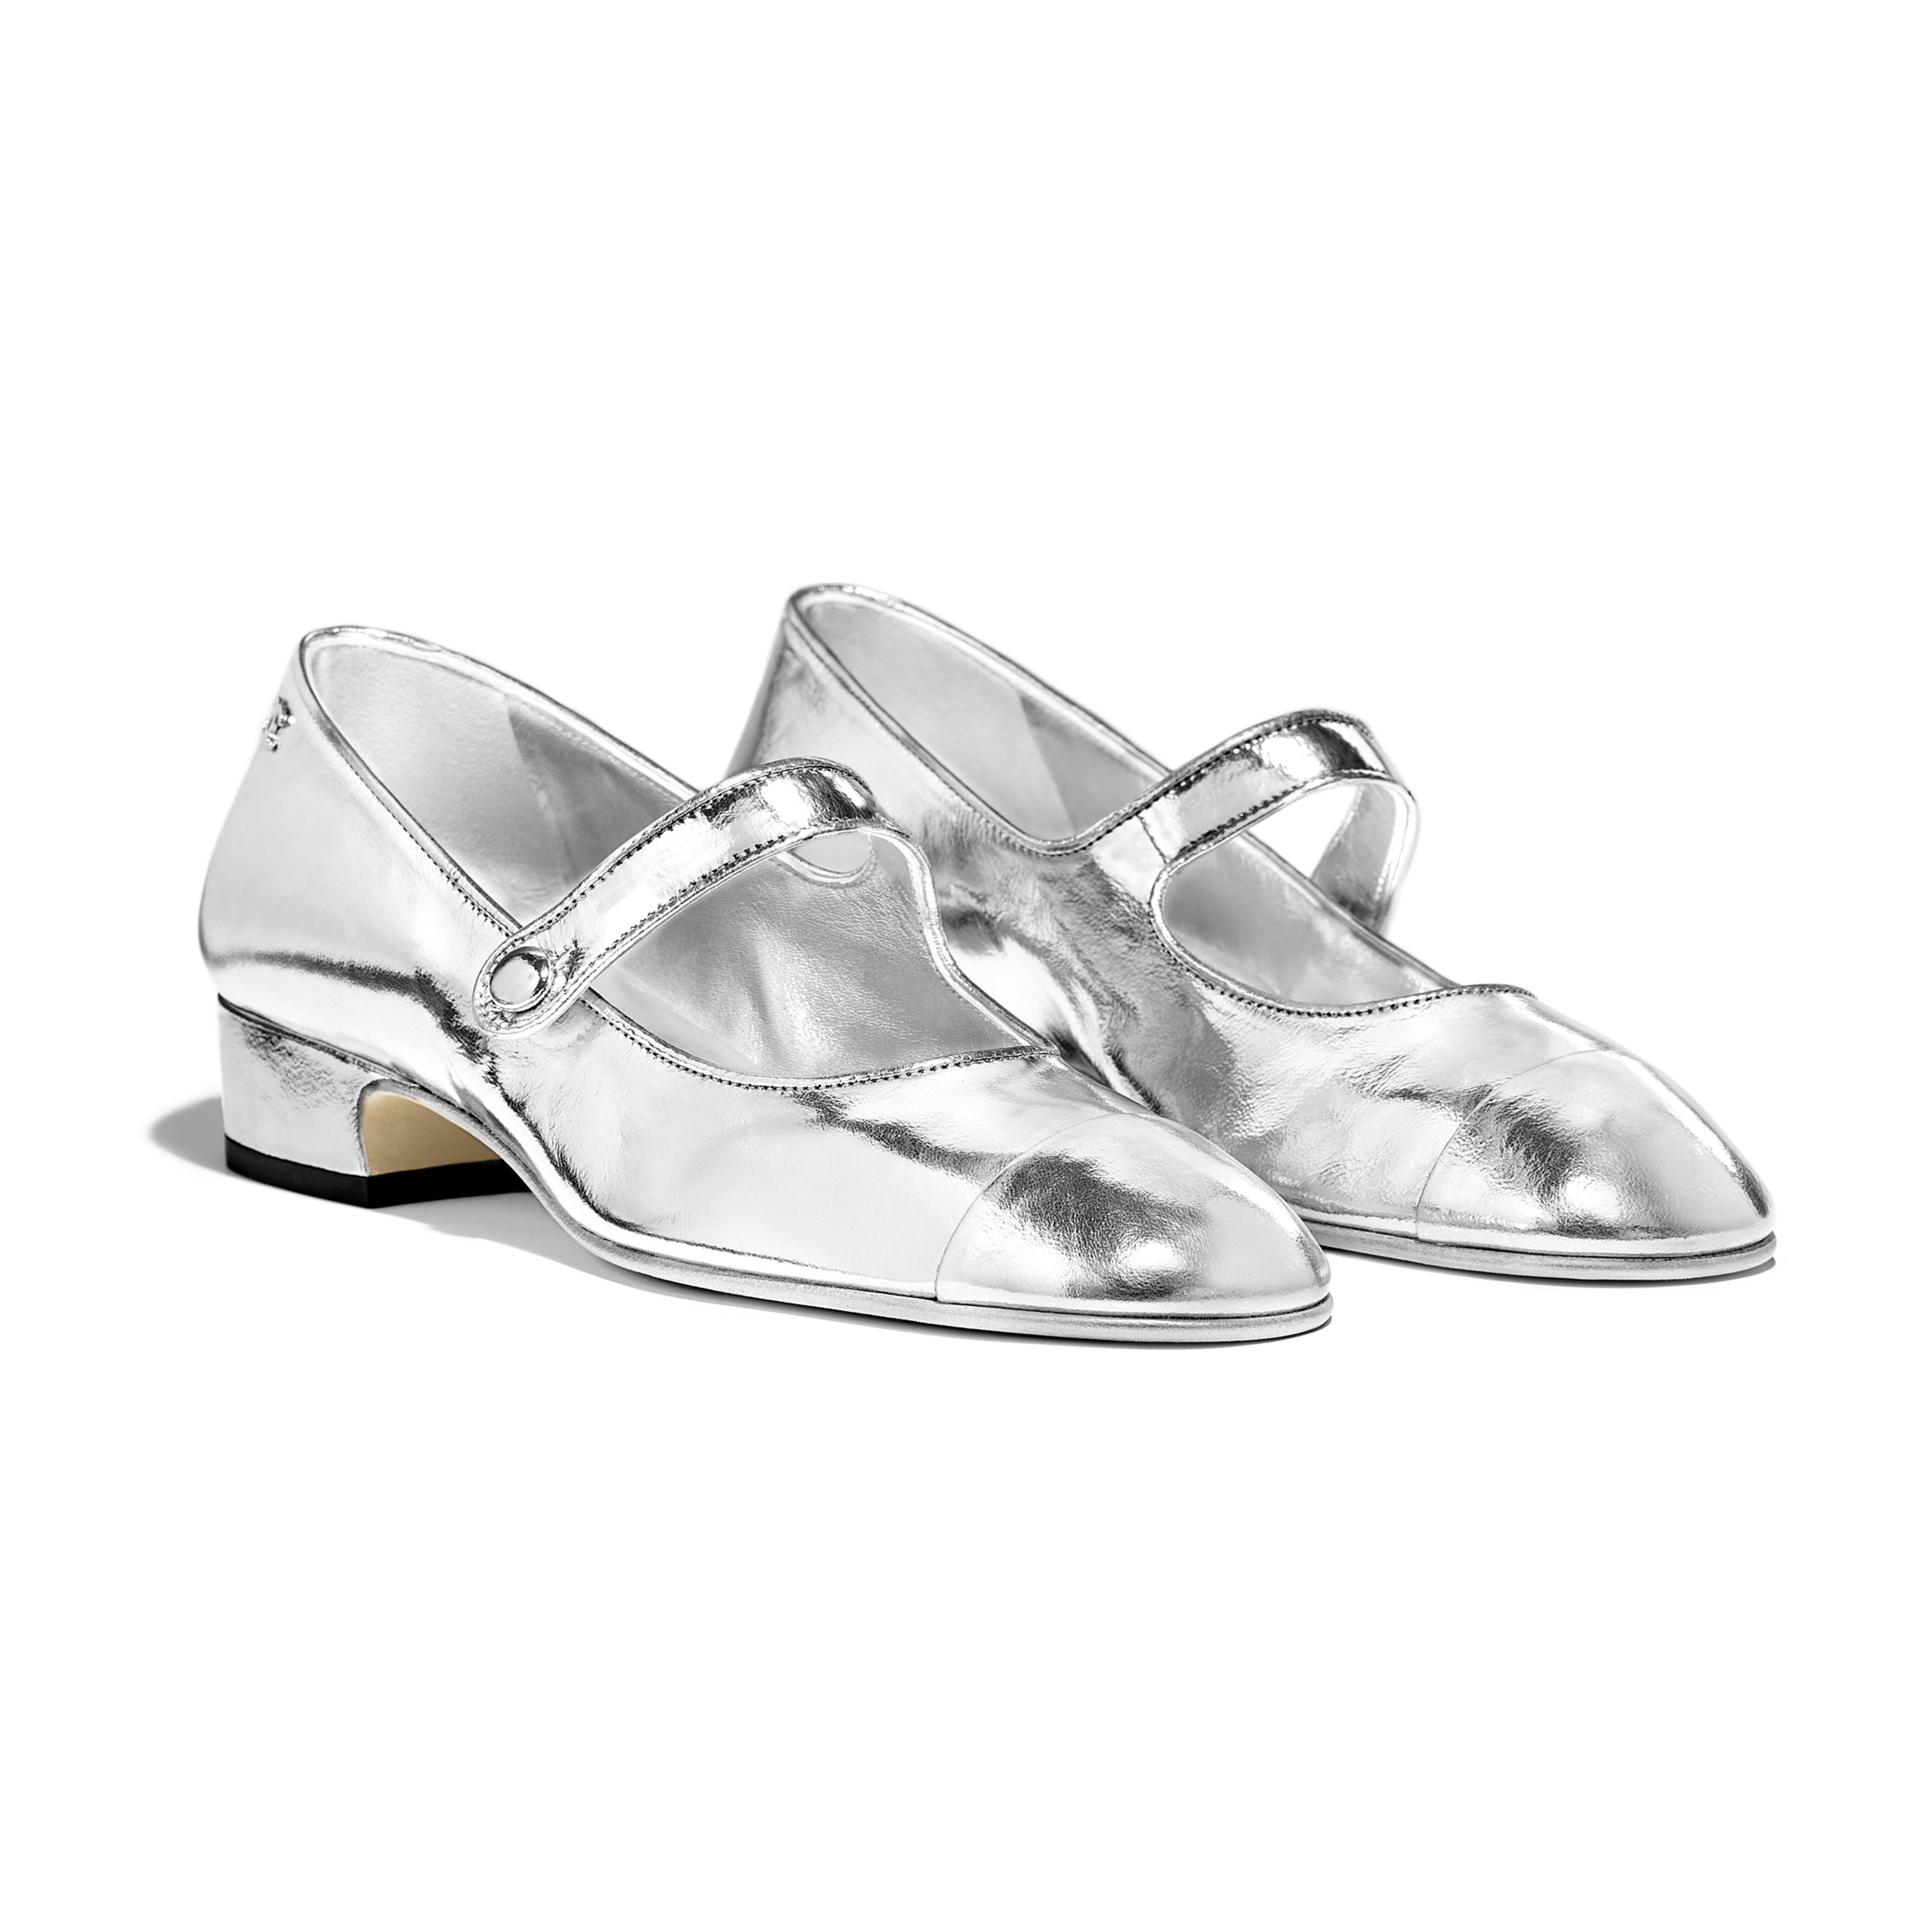 Mary Janes - Silver - Laminated Goatskin - Alternative view - see full sized version